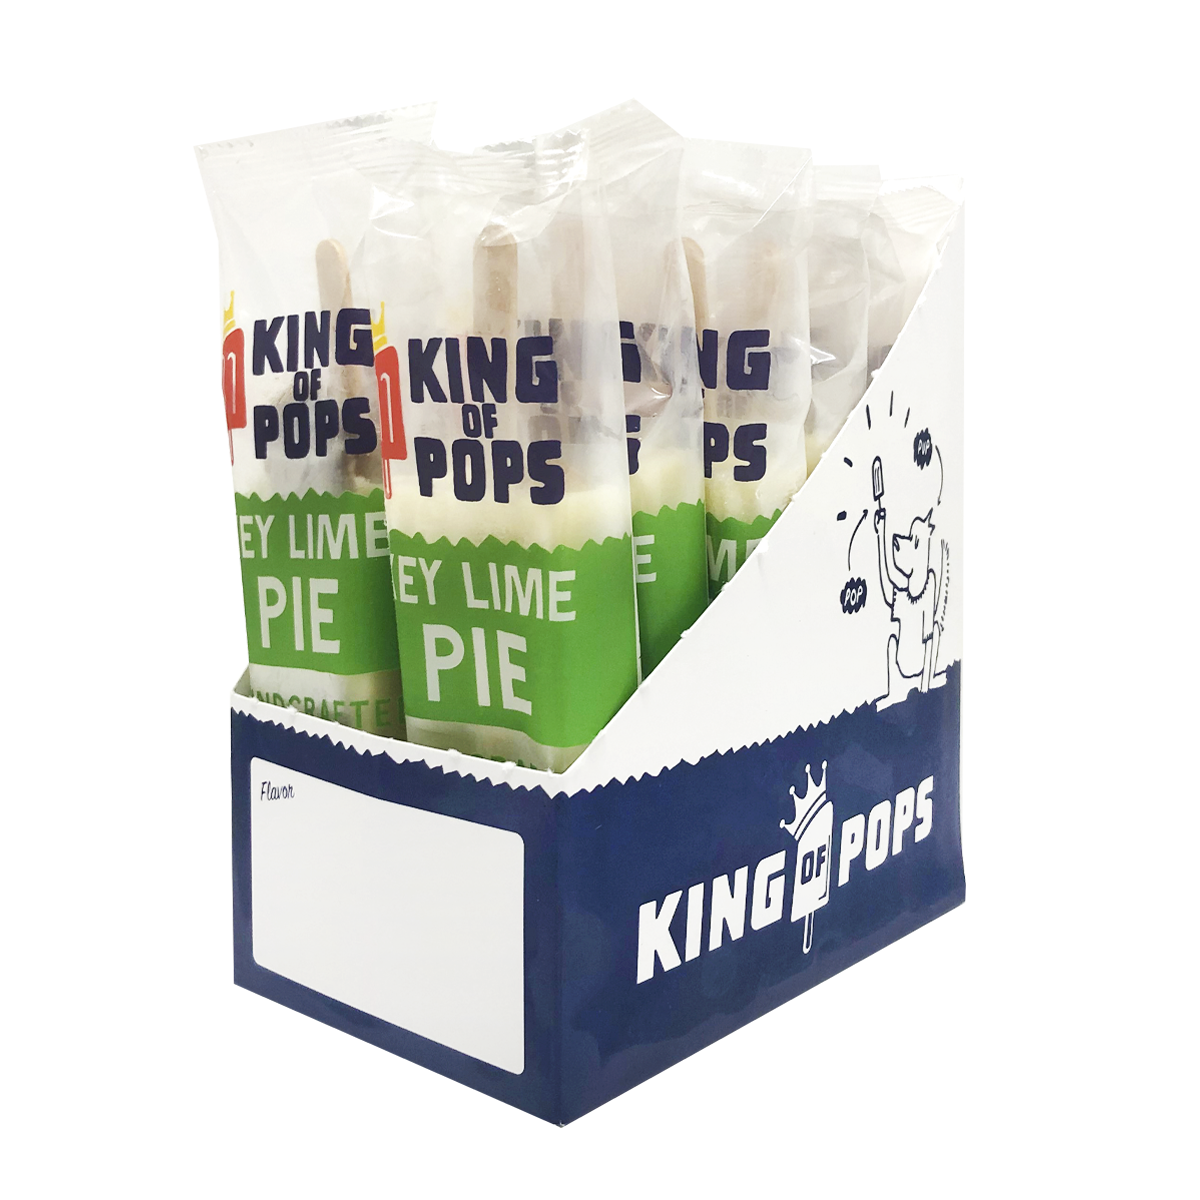 King of Pops - Key Lime Pie 12-pack